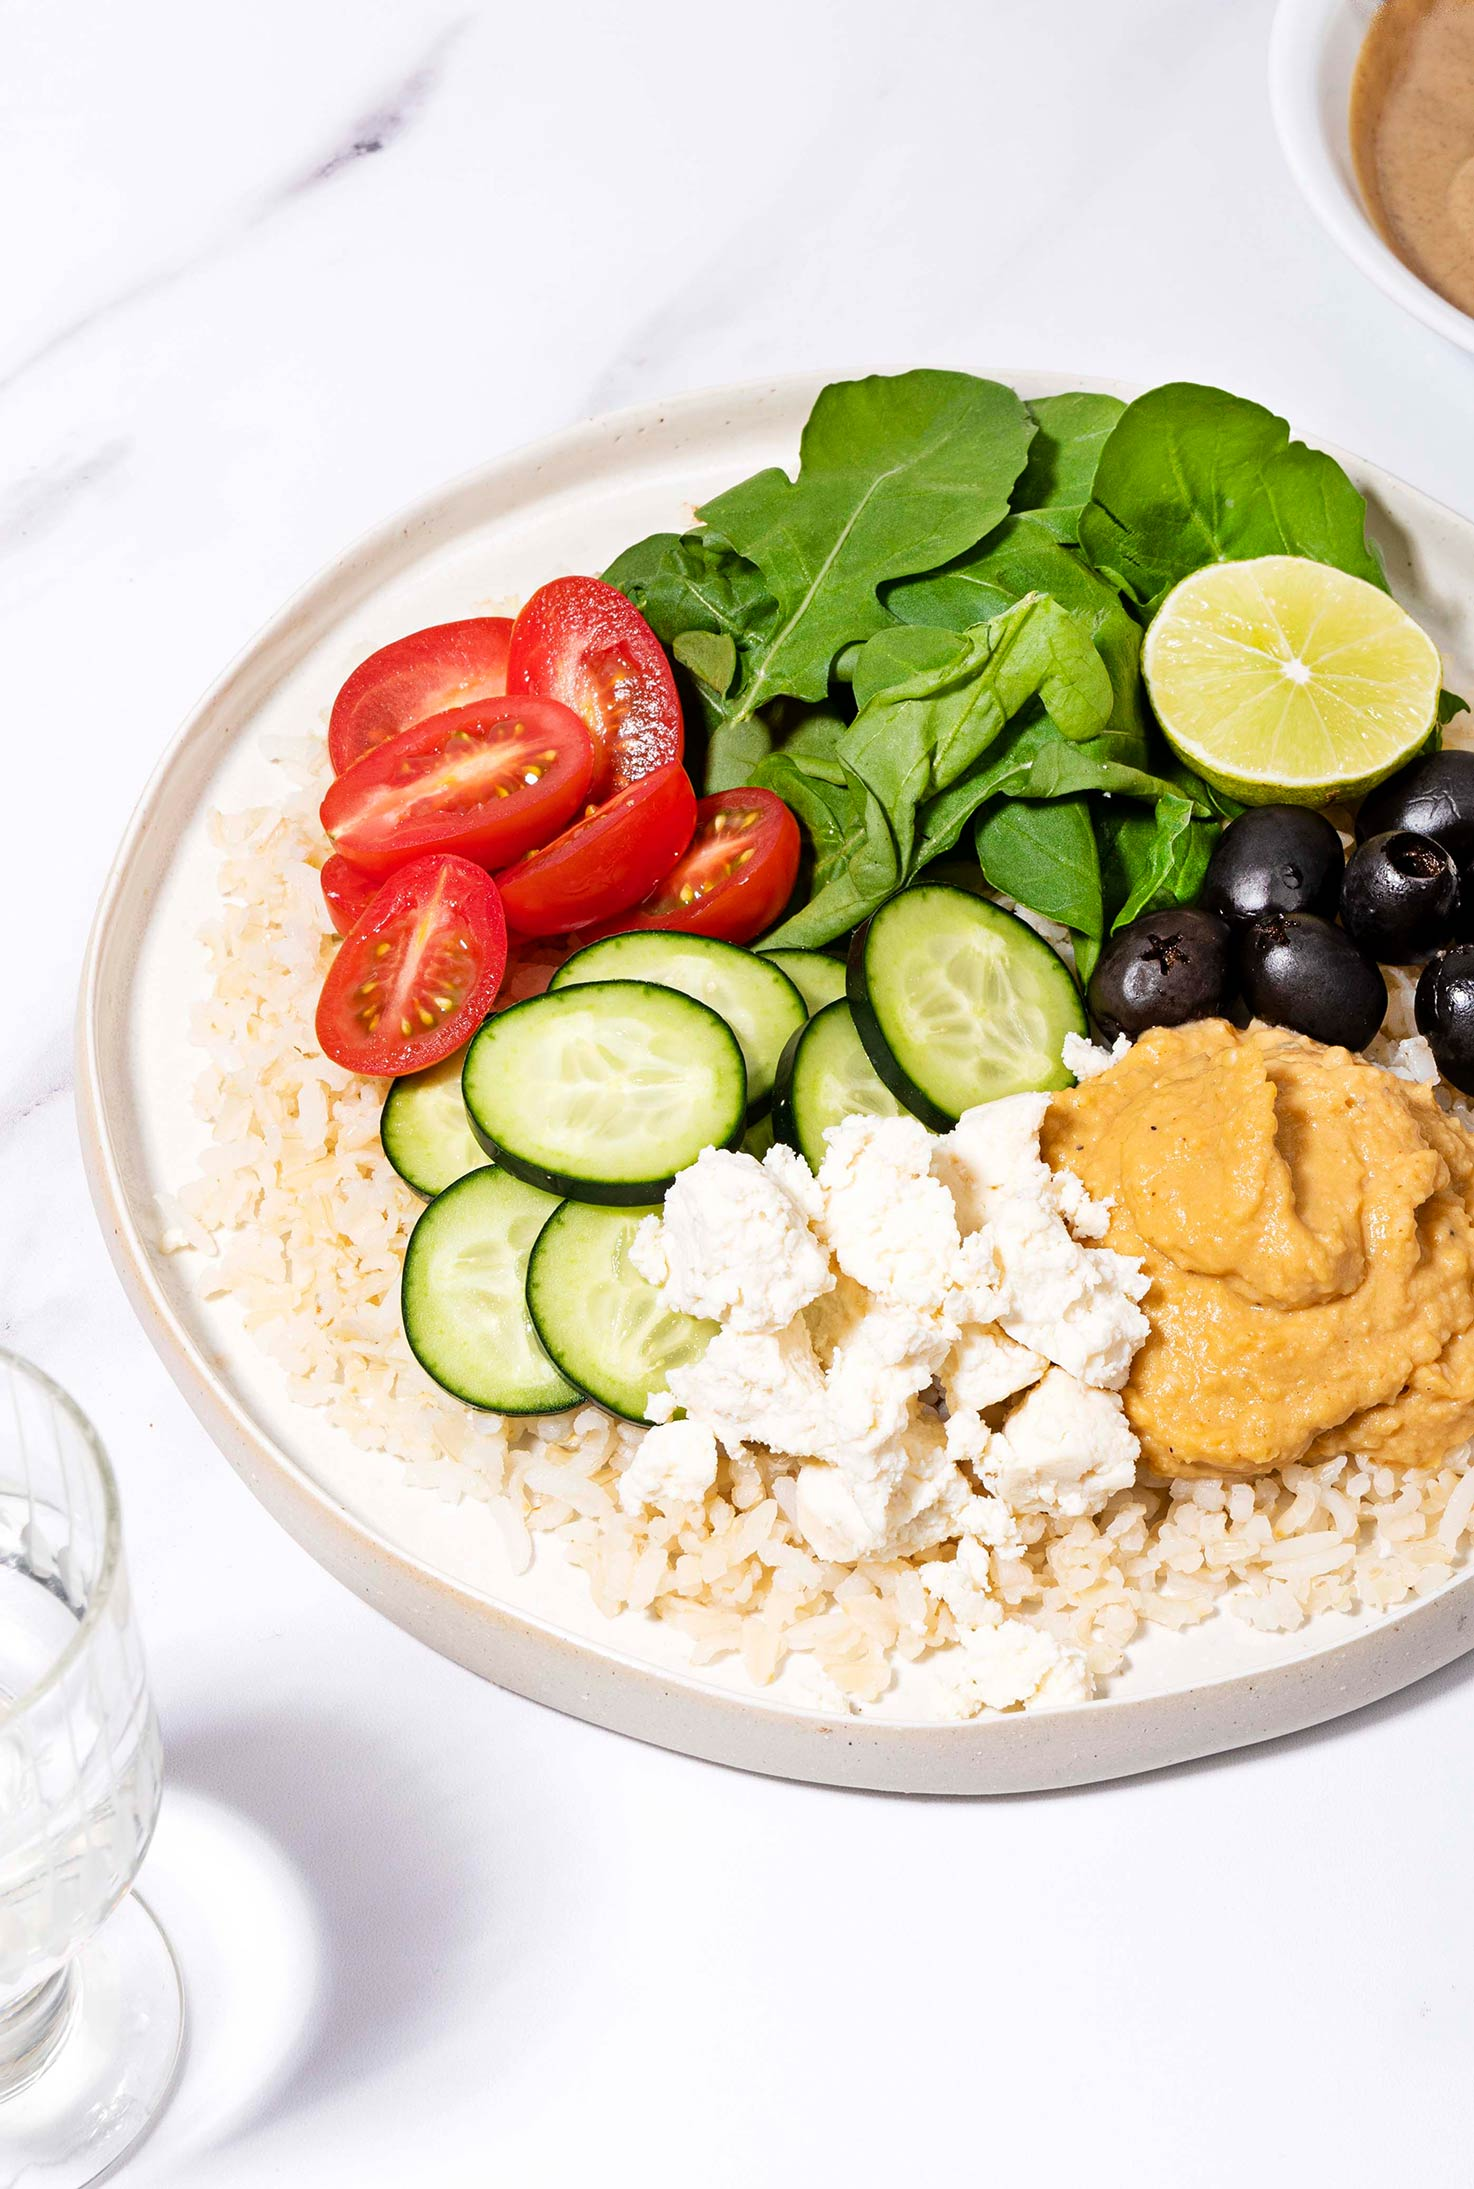 Mediterranean Rice Bowl is served on the plate with a glass of water and tahini sauce in the bowl   Hurry The Food Up